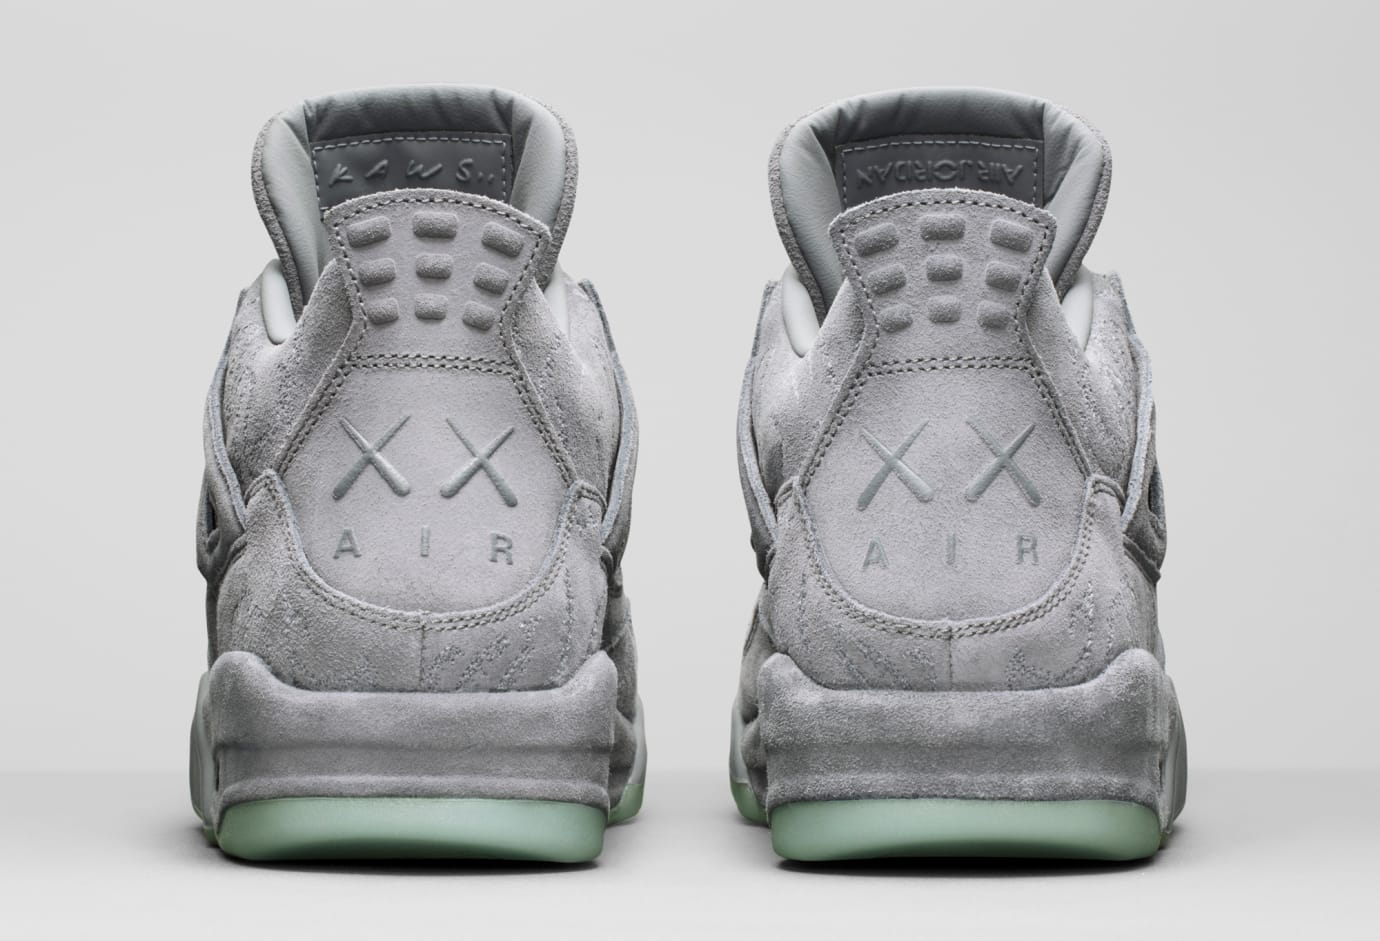 best cheap 1a863 4784a Release Info Jordan Kaws Collection | Sole Collector